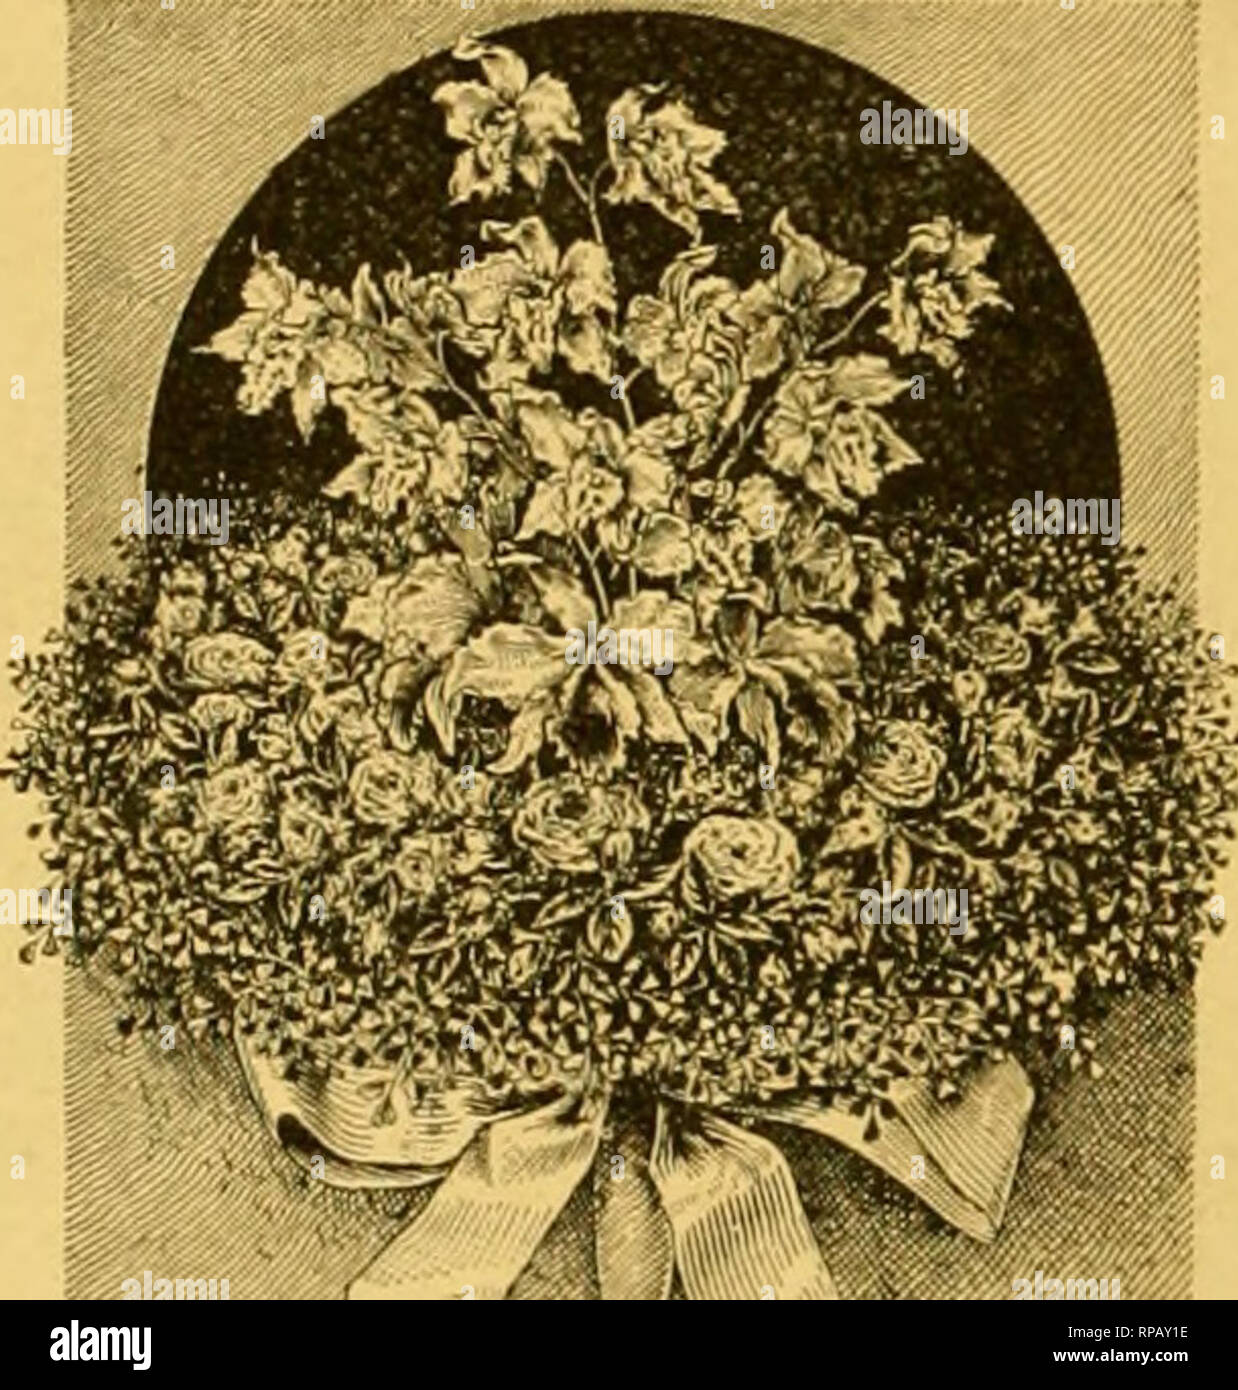 . The American florist : a weekly journal for the trade. Floriculture; Florists. 566 The American Florist. Aug. /, be inconsistent in our dealings or to under-value either our services or our goods; such things do not tendto impress people favorably concerning the trade. Having at divers times indulged in the popular pastime of abusing the Puritan rose I desire at this time to take some of it back, inasmuch as I have a plant out- doors that during the past two months has given me a goodly number of fine, pure white blooms. The plant is grow- ing vigorously in a very stiff soil and every shoot  Stock Photo